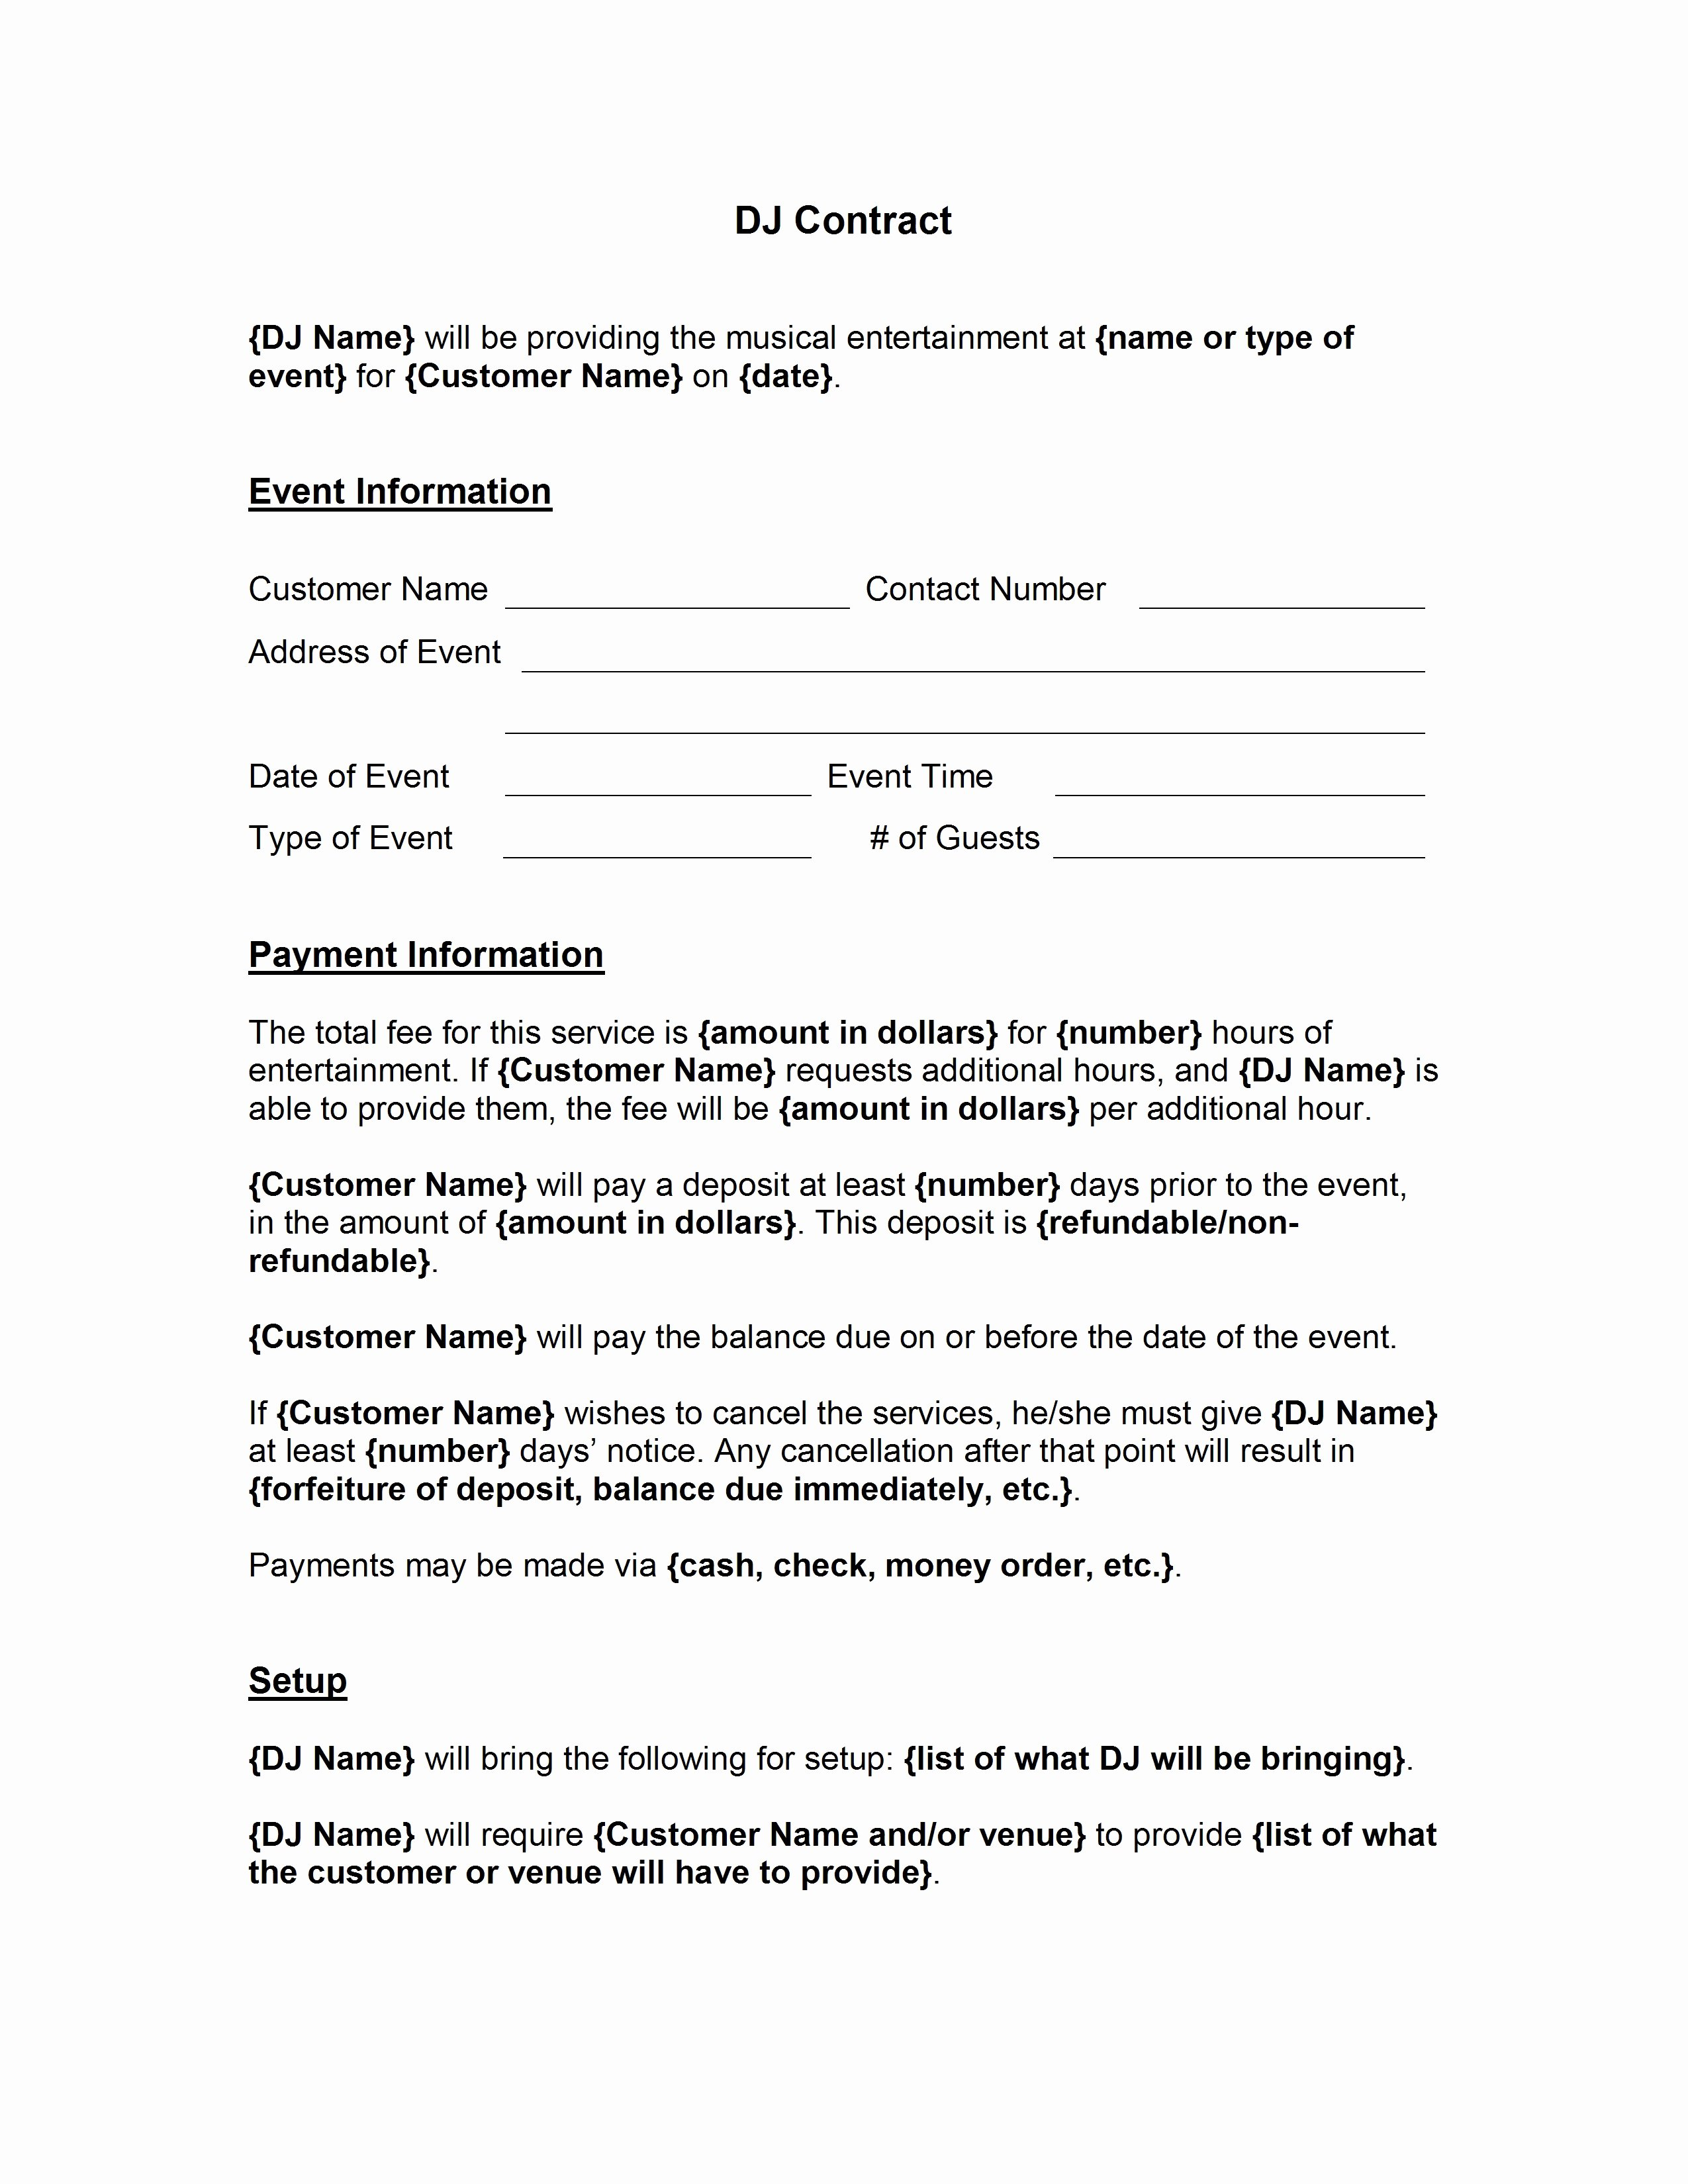 Free Dj Contract Template Luxury Dj Contract Template Free Microsoft Word Templates